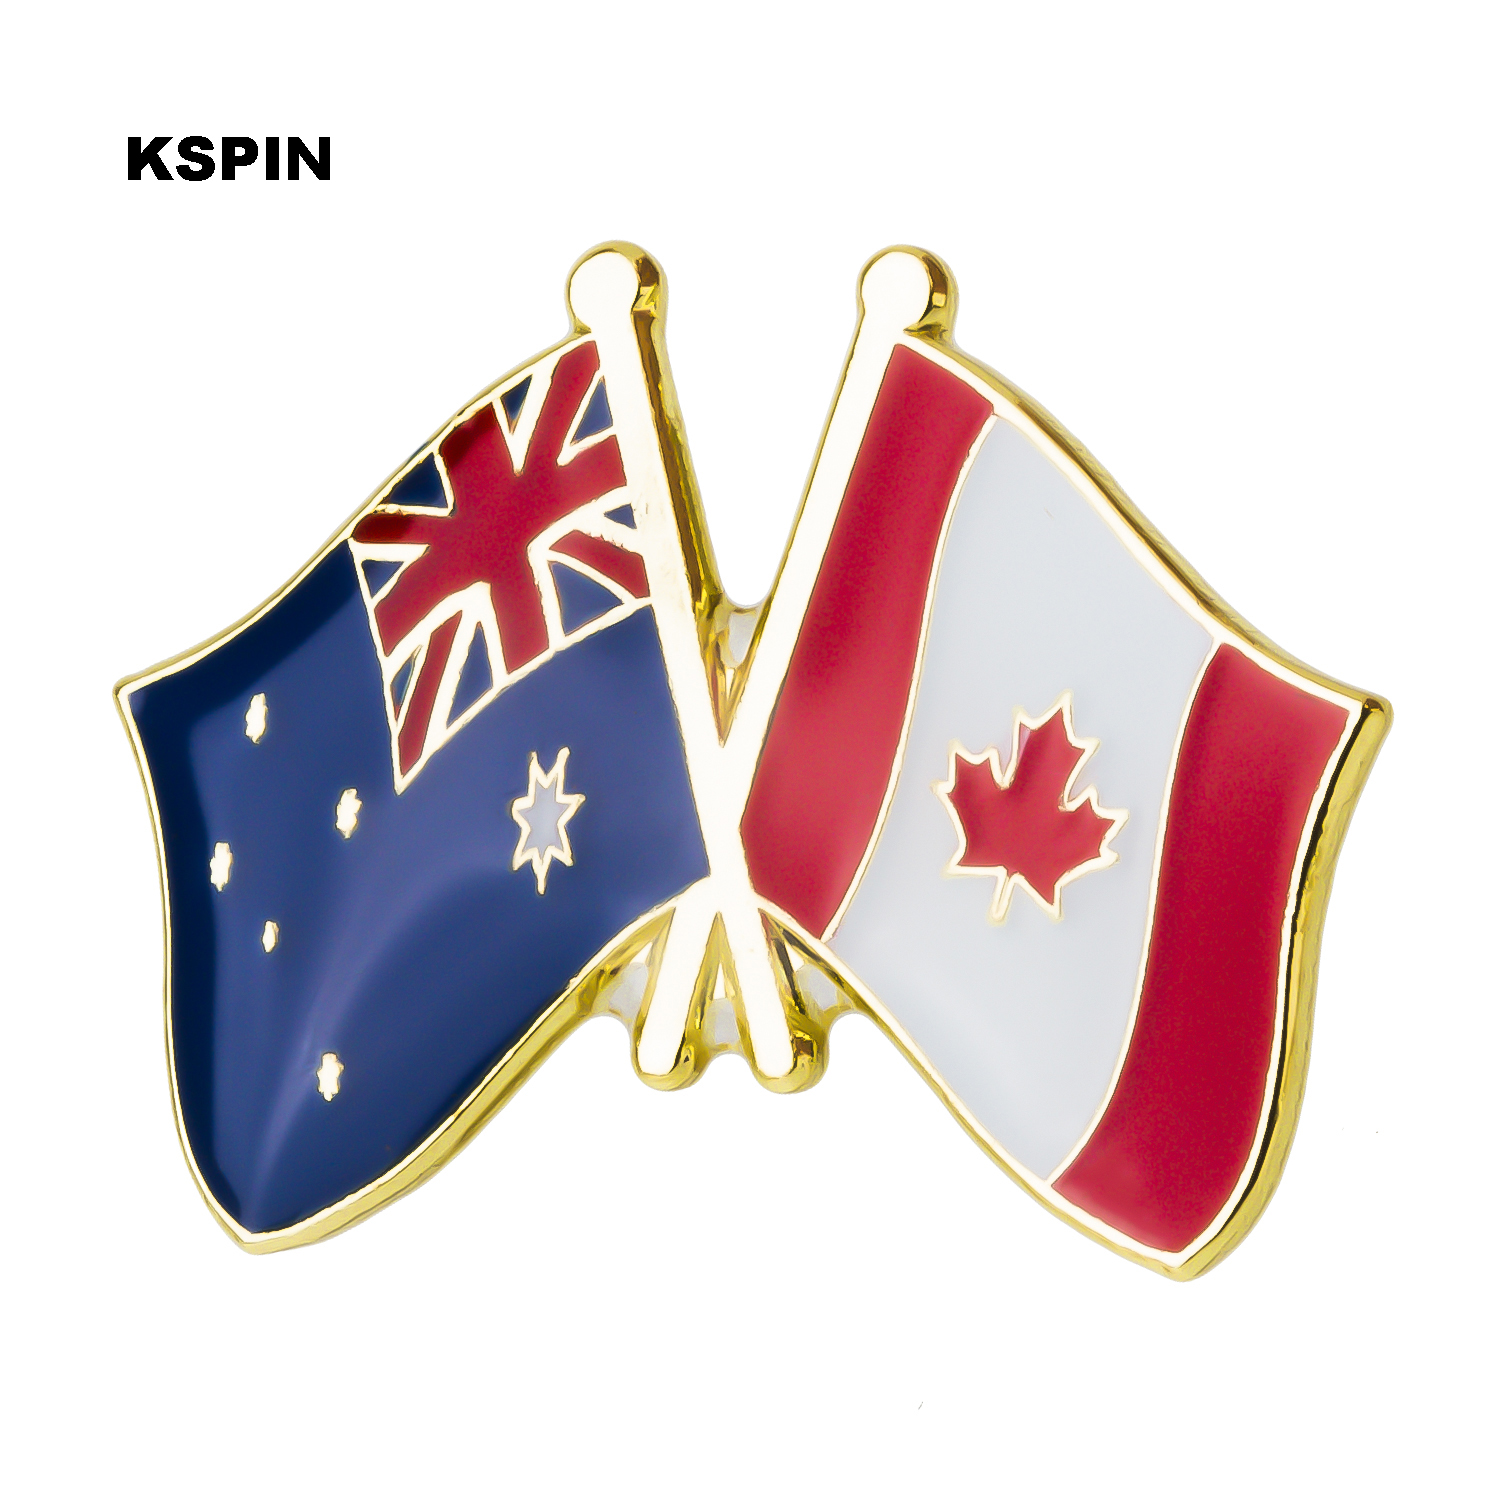 Badges Apparel Sewing & Fabric Metal Badge Australia Canada Friendship Flag Label Pin Badges Icon Bag Decoration Buttons Brooch For Clothes Good Companions For Children As Well As Adults